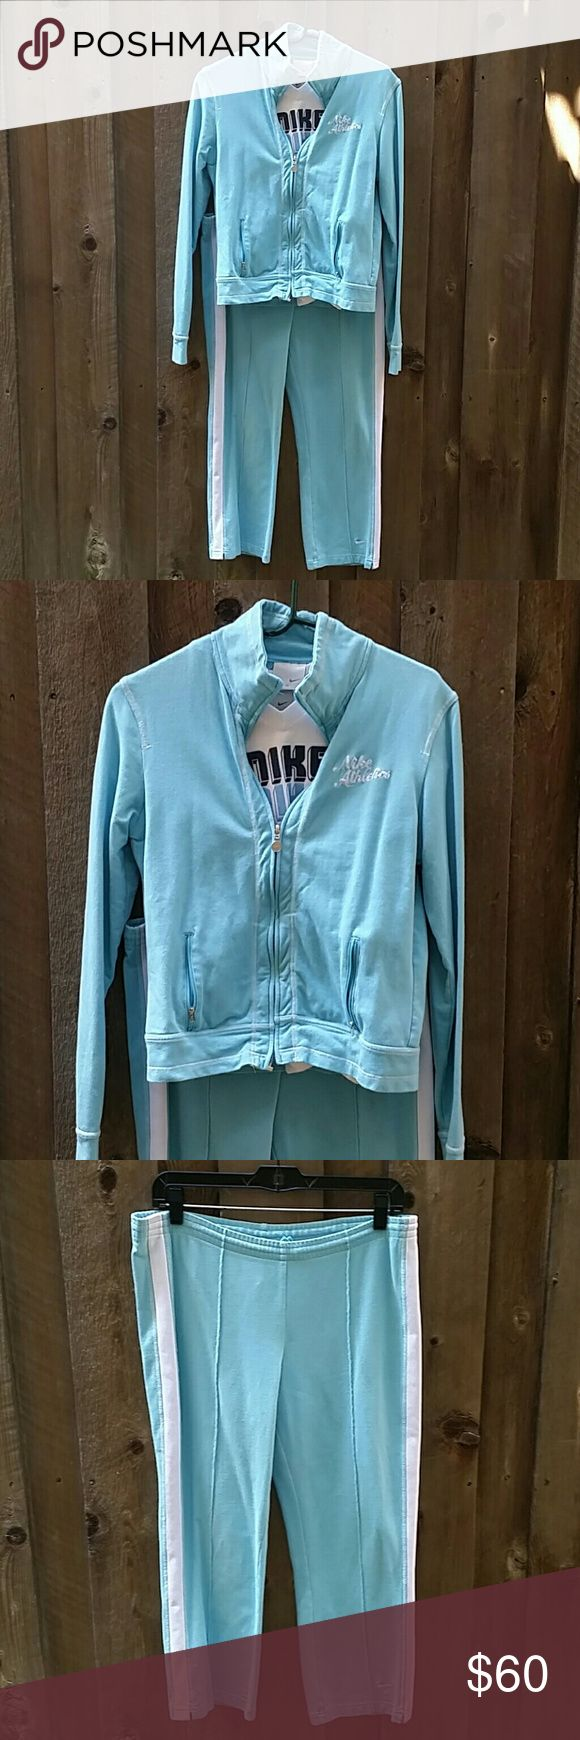 "Nike Light Blue Jogging Suit Size M Nike Light Blue Jogging Suit Size M with White Nike Shirt Size L.  The pants have an elastic waist and come right above my ankle (I sm 5'4"").  Jacket had Nike Athletics written on it. There is a faint stain on the shirt as noted in last pic. Used in good condition.  Will sell shirt separately if you would like just the shirt. Let me know and I'll list a separate ad. No trades / No PayPal.  Smoke and Pet free home.  Please ask questions.  Like what you see…"